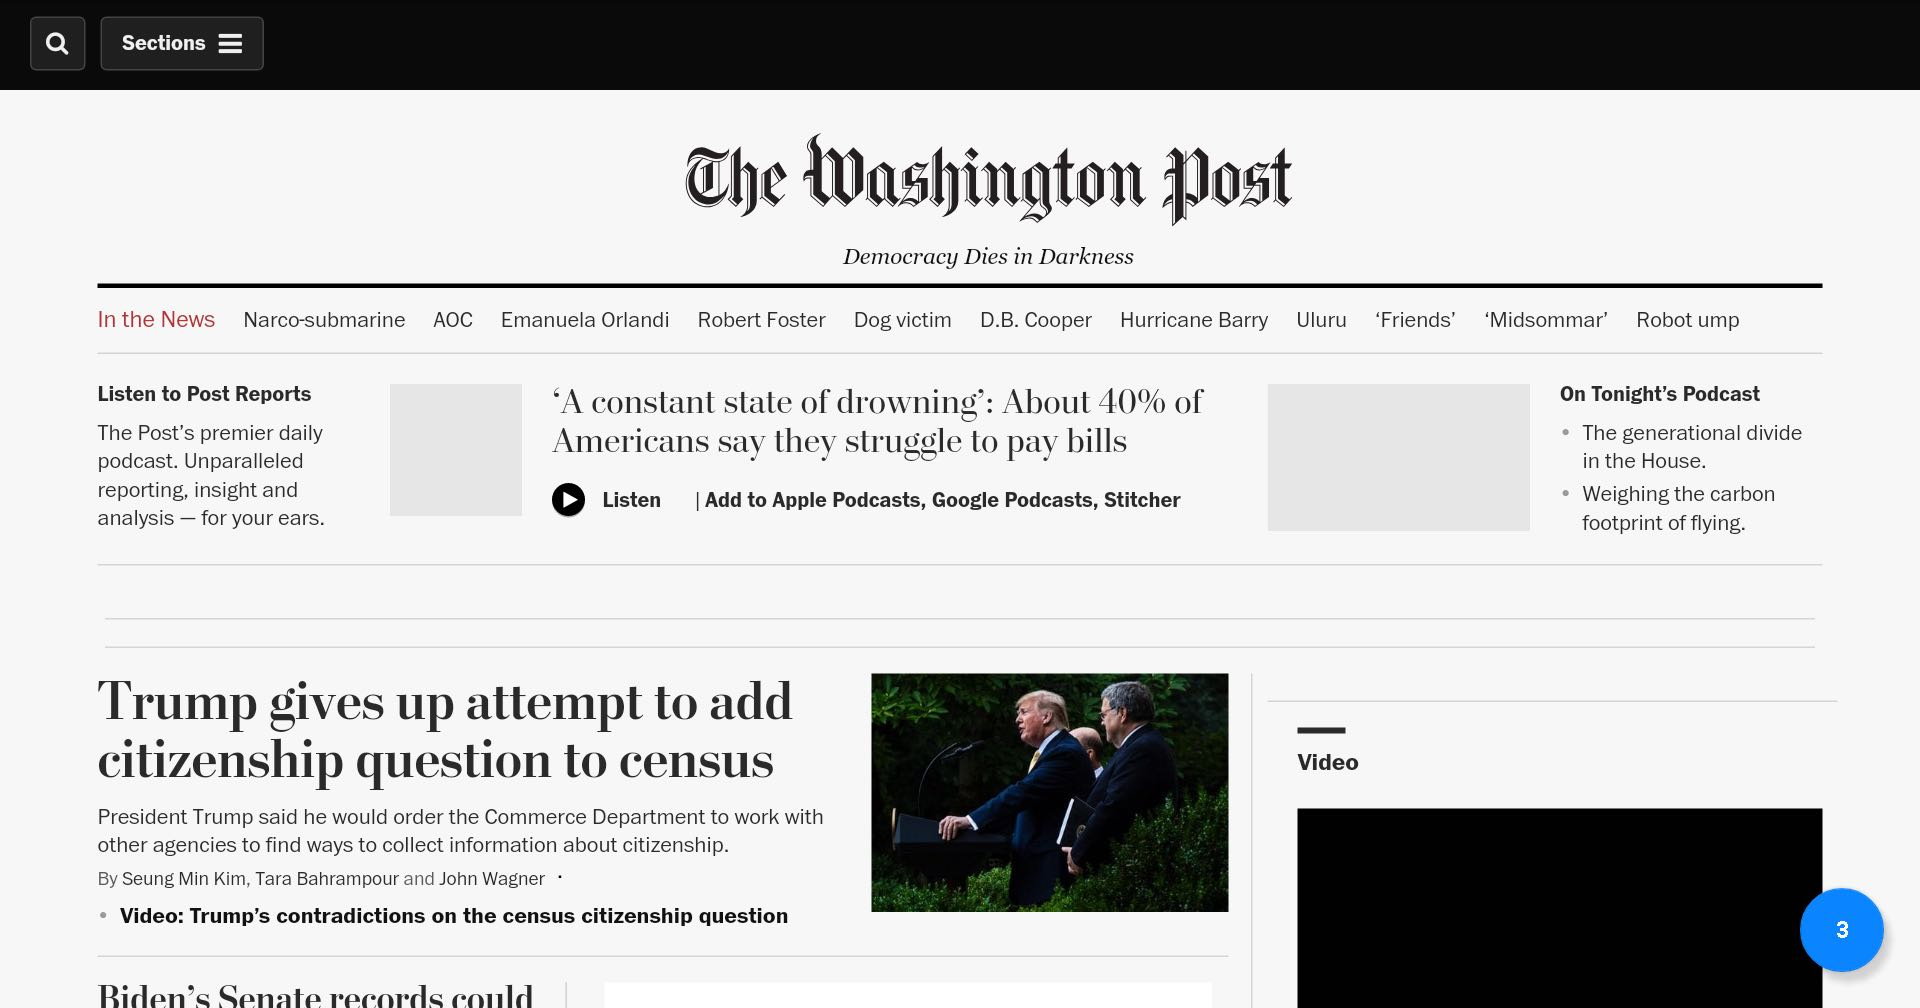 The Washington Post home page on July 7, 2019